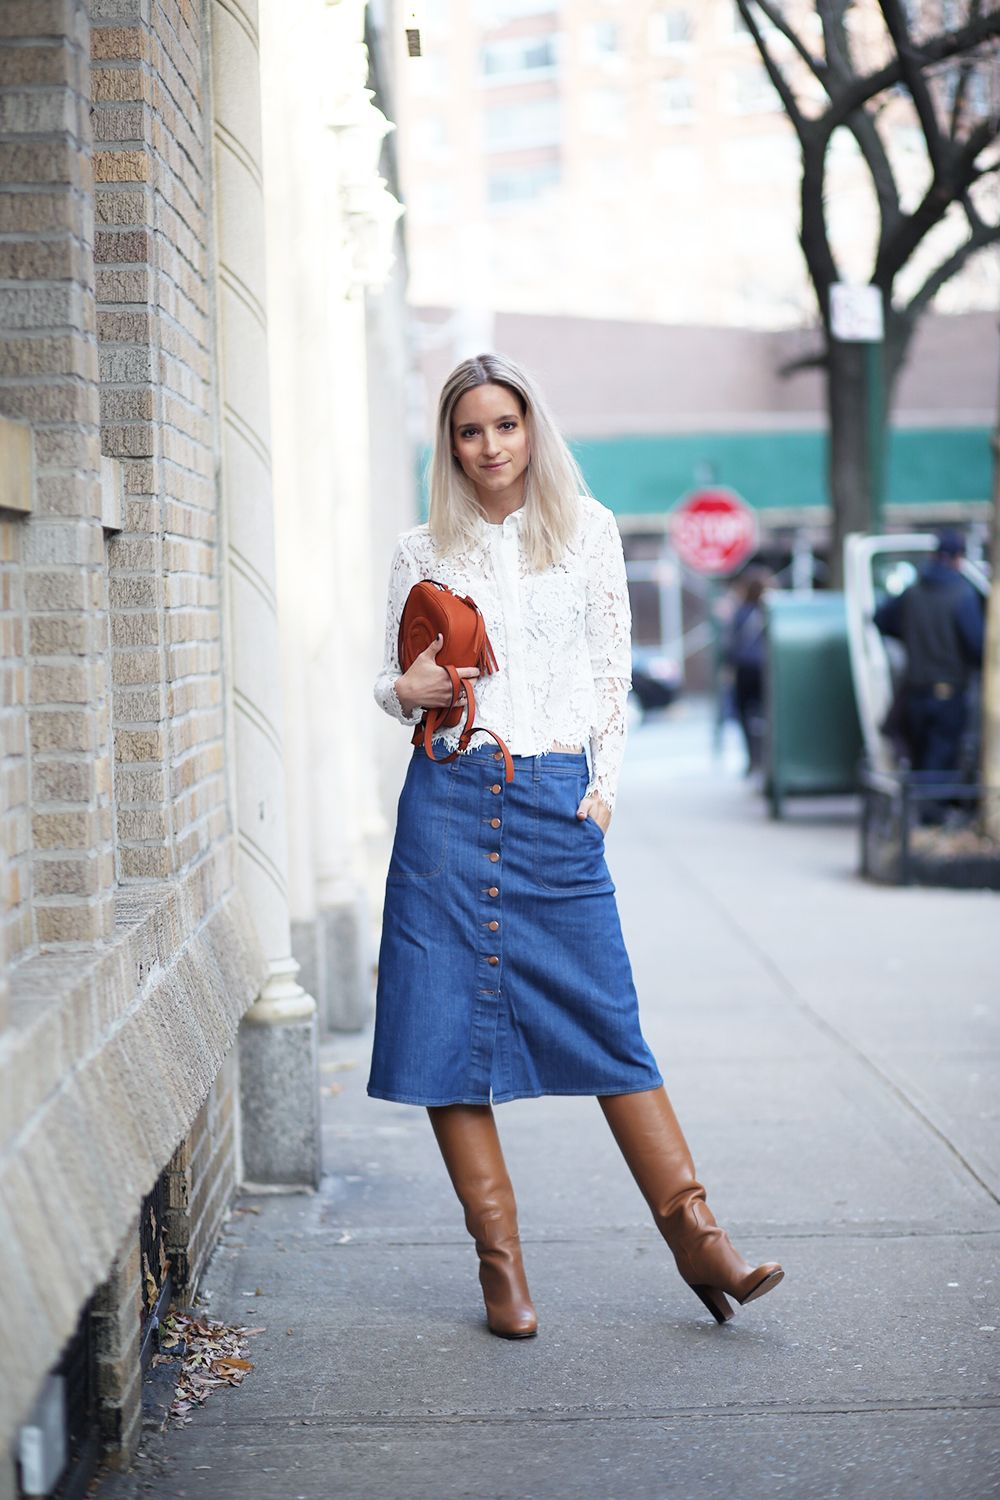 2c11133ee7 A denim midi skirt and knee-high boots are transitional weather dressing  make easy and chic as seen on THEFASHIONGUITAR for Net-A-Porter.